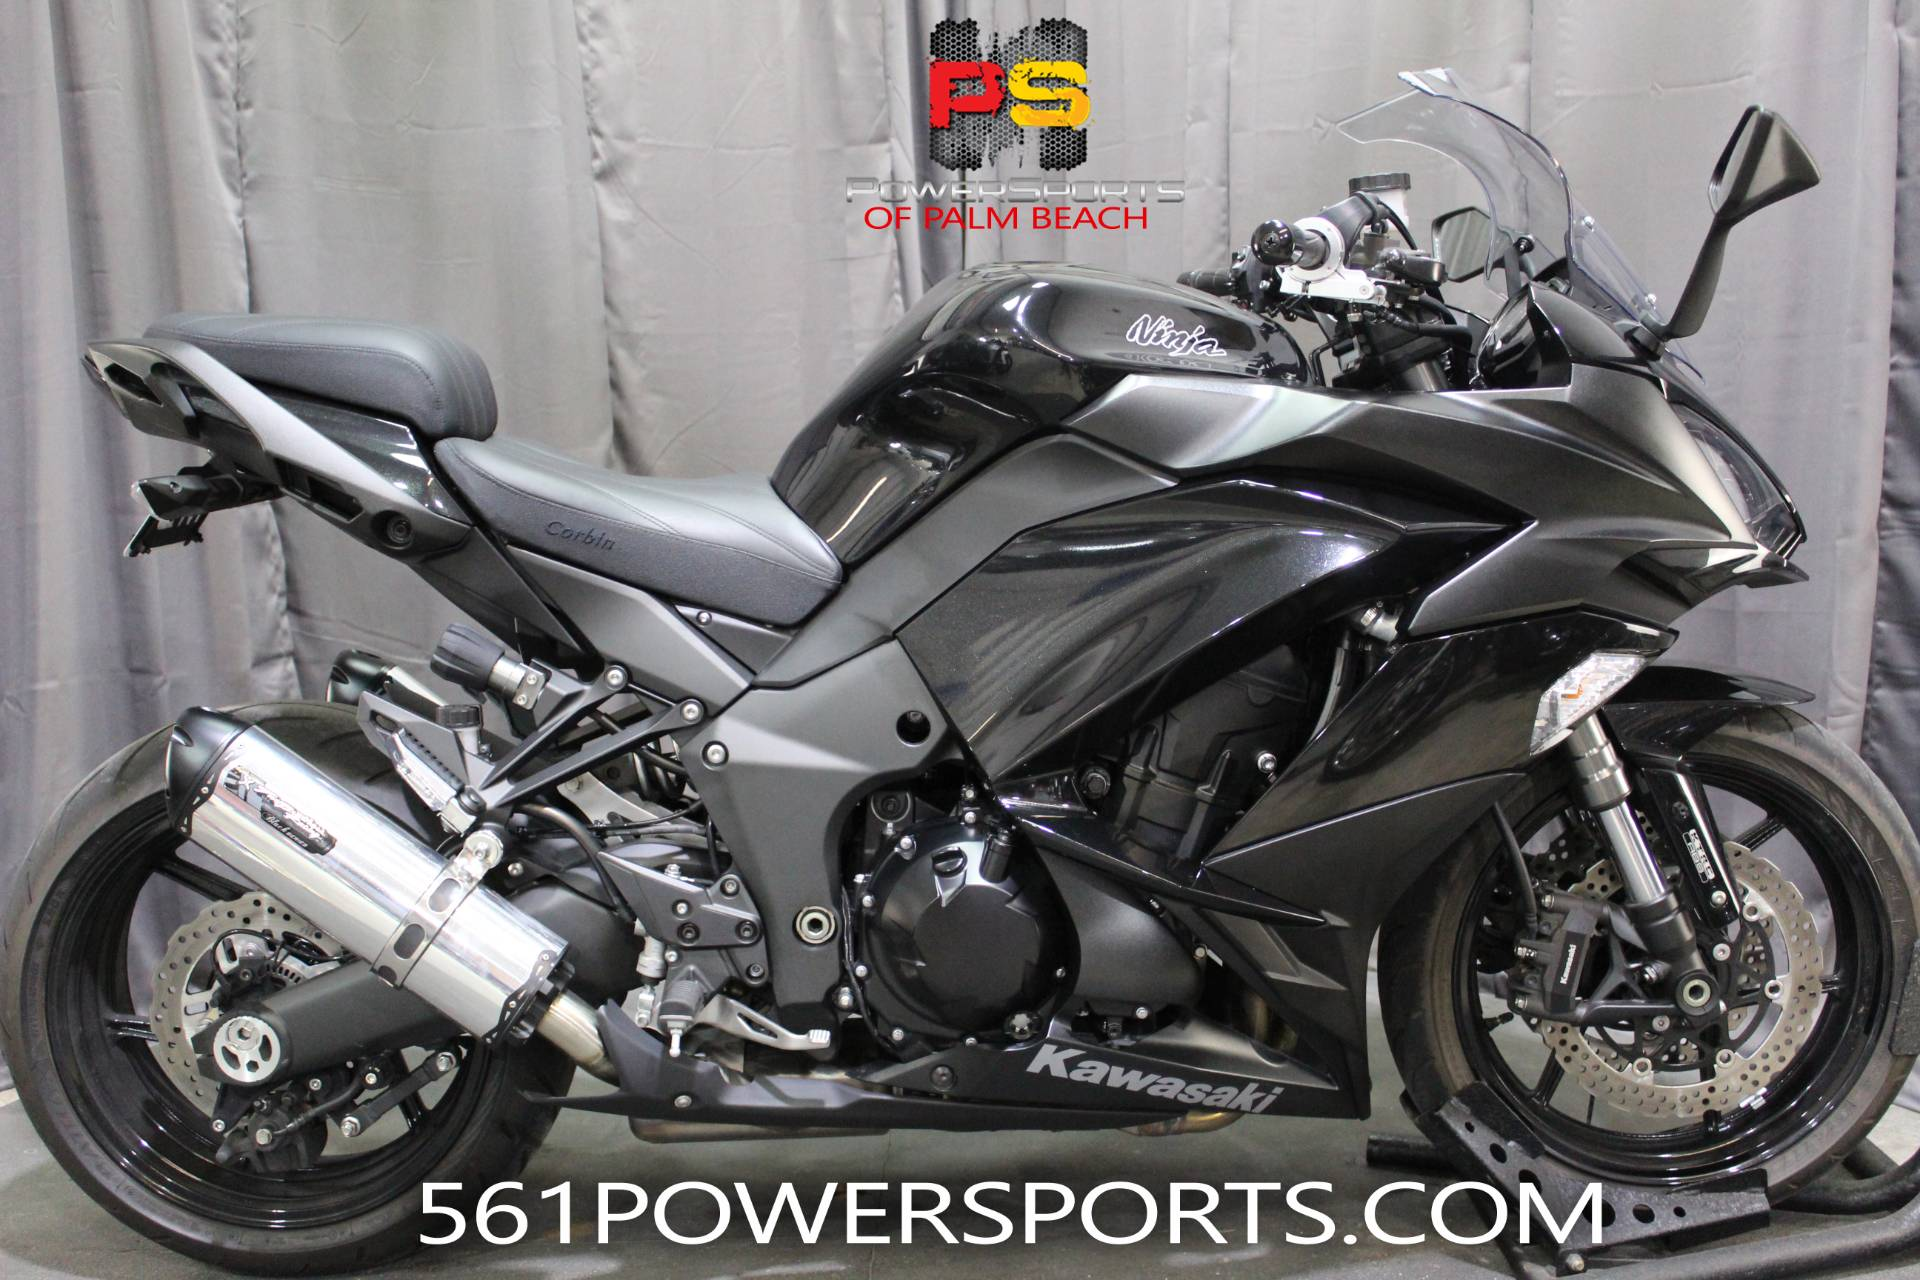 2019 Kawasaki Ninja 1000 ABS in Lake Park, Florida - Photo 1